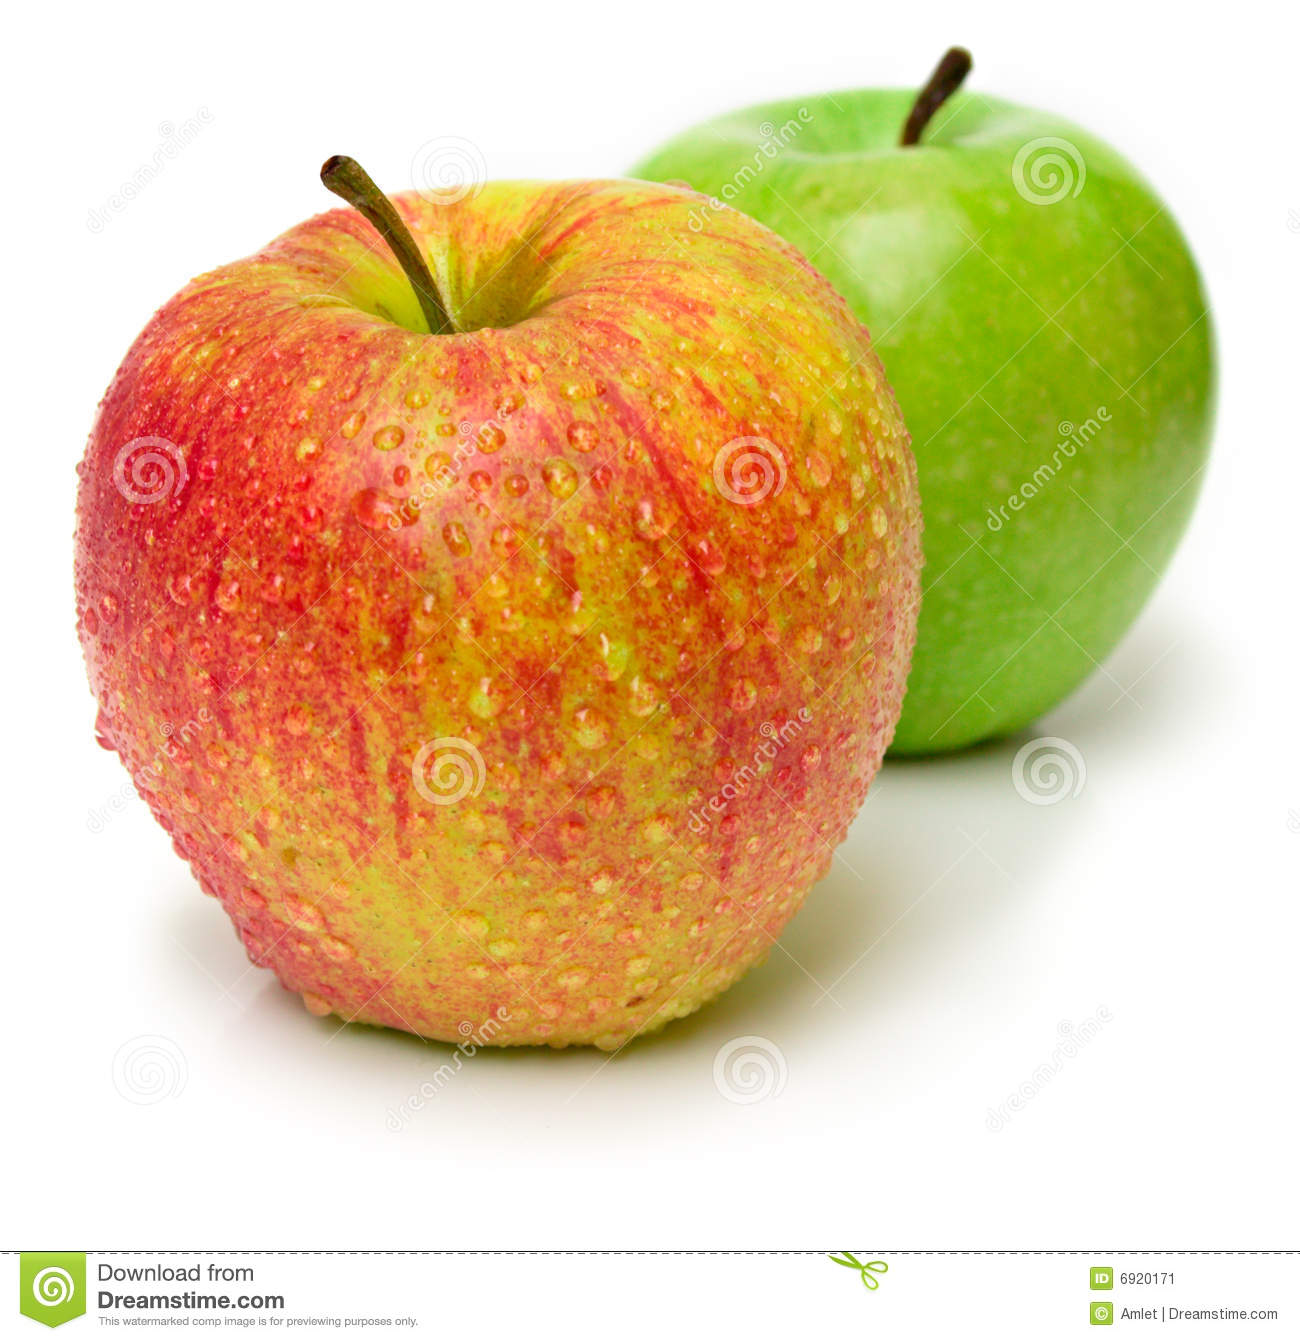 green and red apples. royalty-free stock photo. download red and green apples p